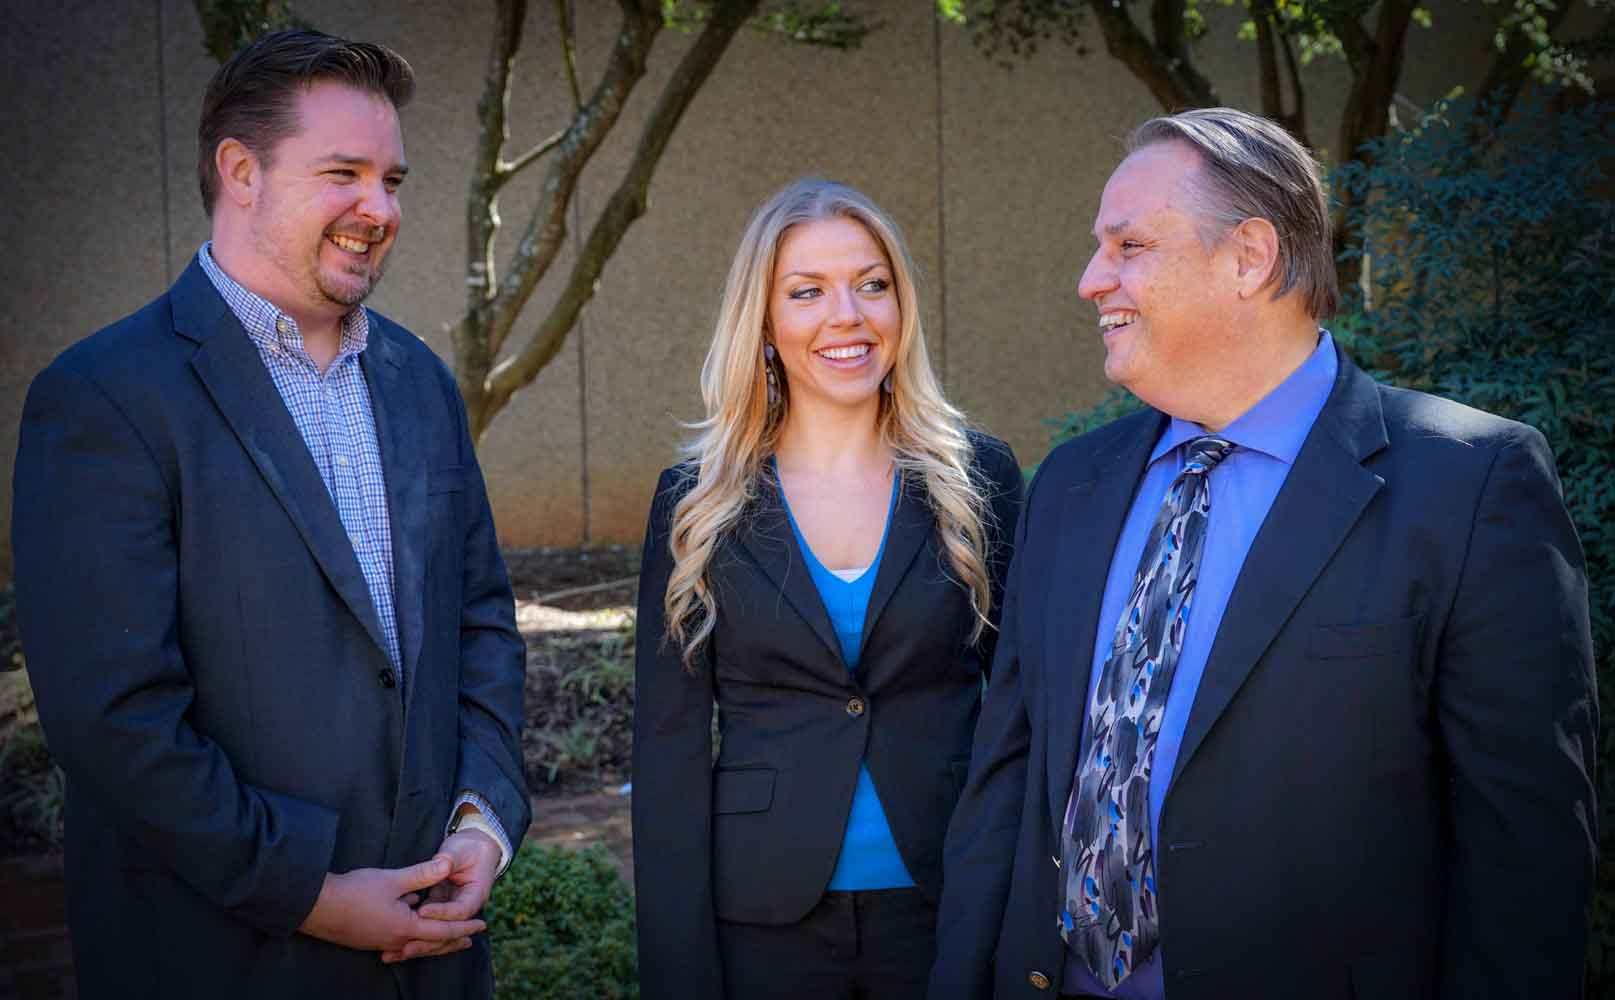 Greg Hyer, Elyse Archer and Martin Brossman of Linking into Sales